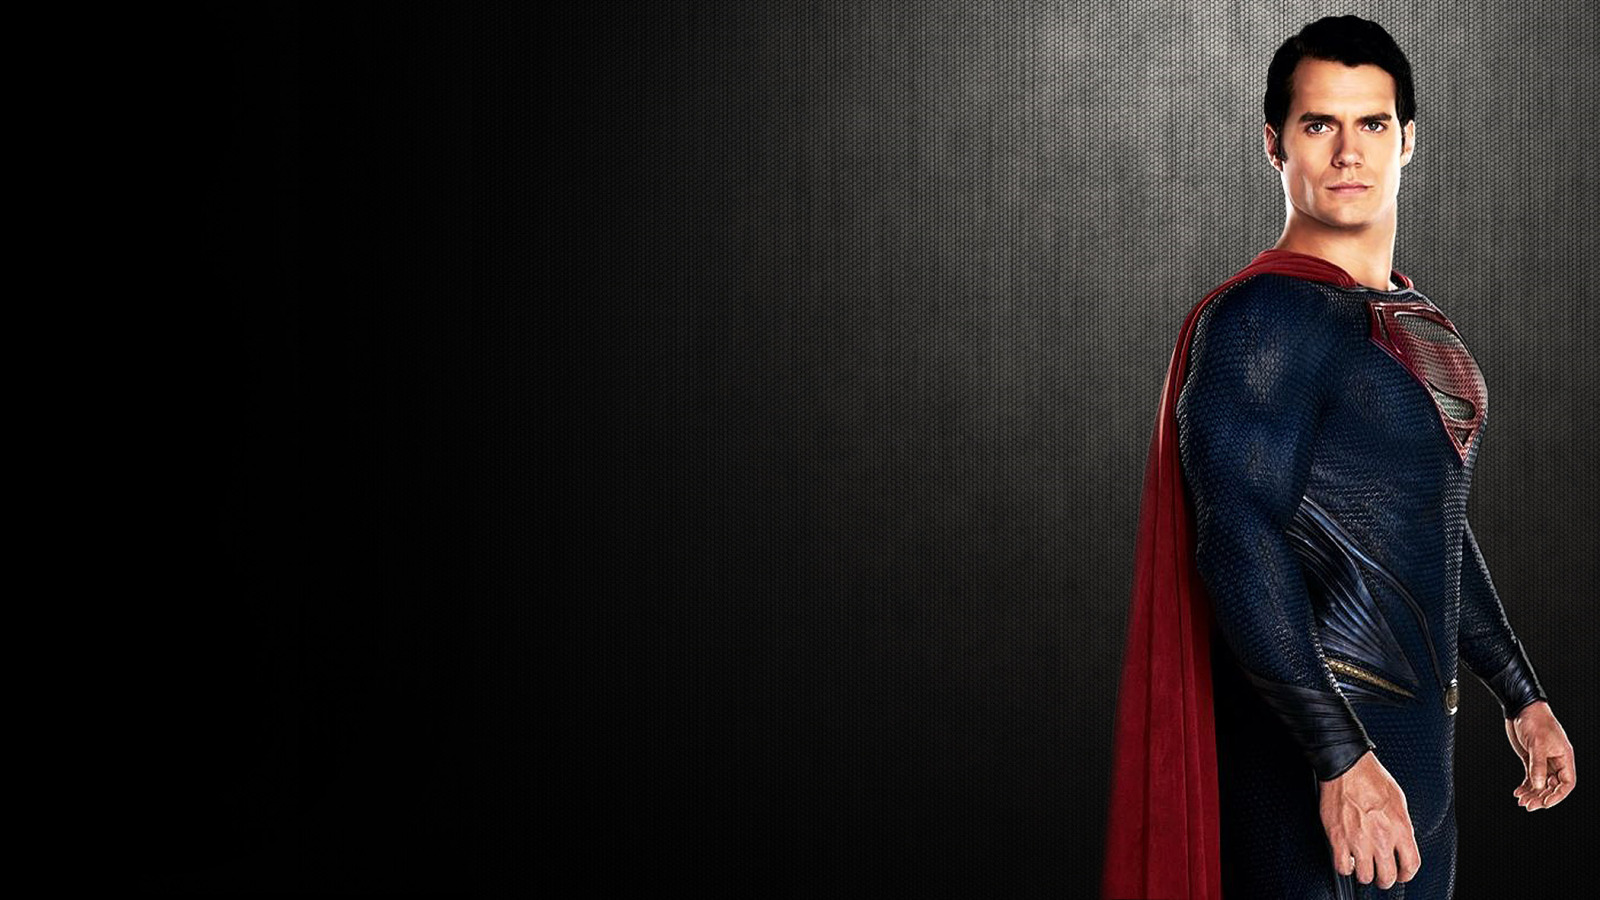 Man Of Steel Images Wallpapers HD Wallpaper And Background Photos